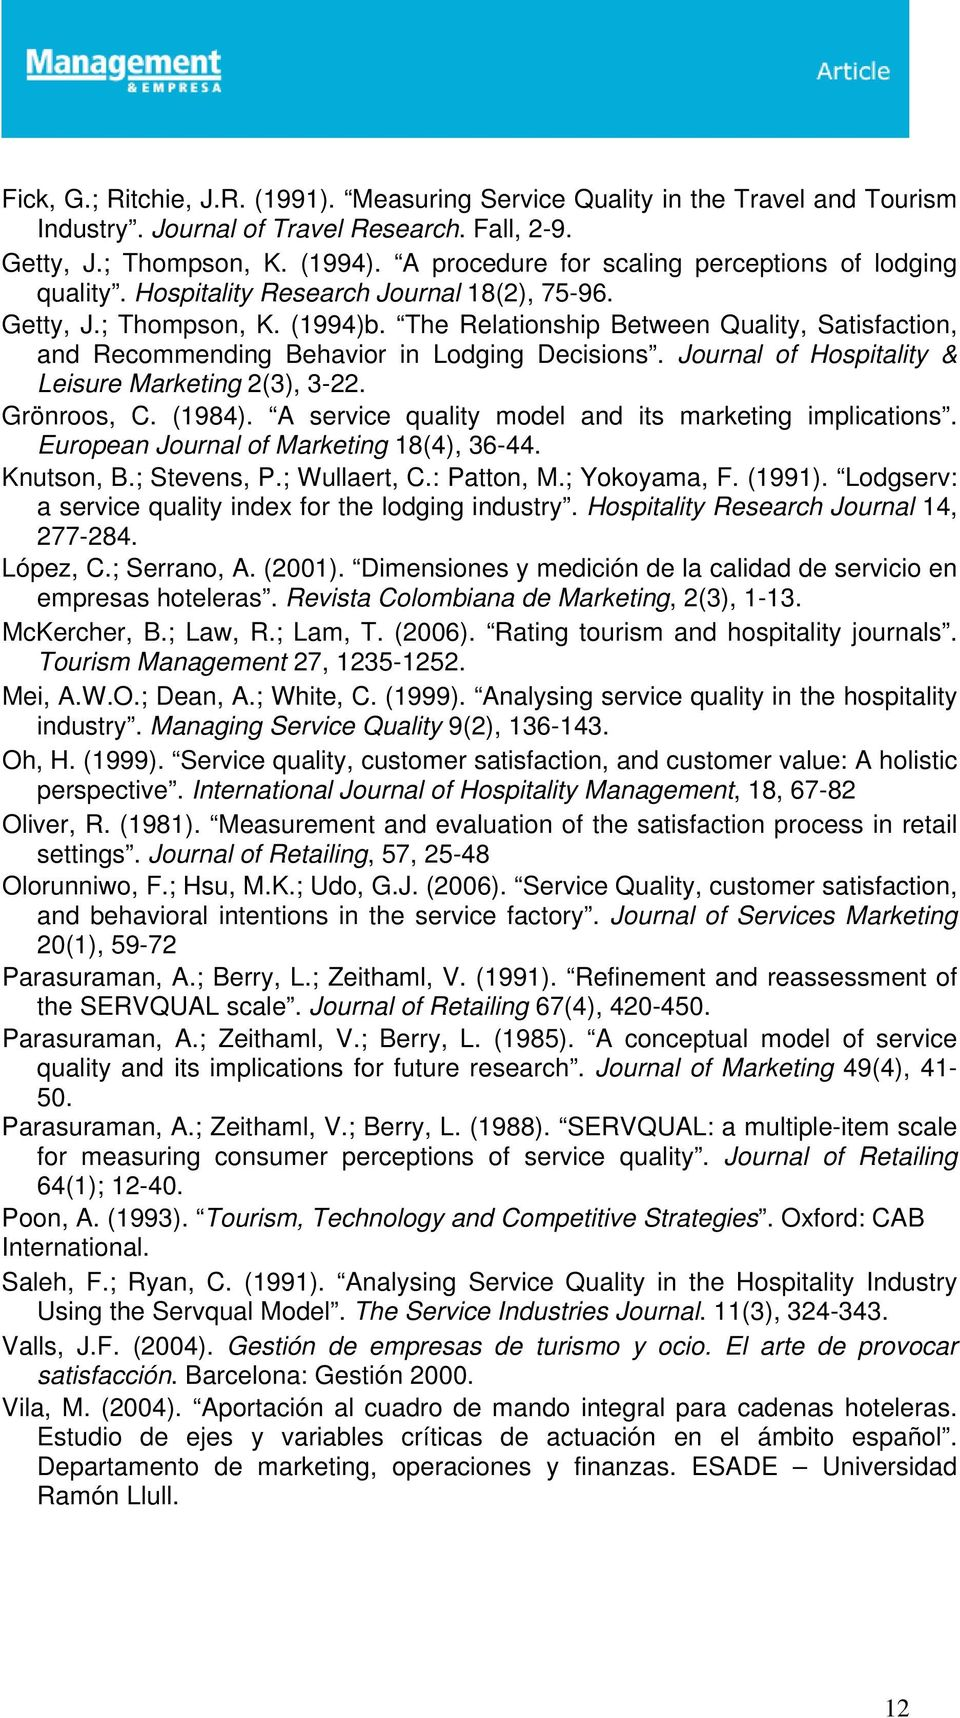 The Relationship Between Quality, Satisfaction, and Recommending Behavior in Lodging Decisions. Journal of Hospitality & Leisure Marketing 2(3), 3-22. Grönroos, C. (1984).